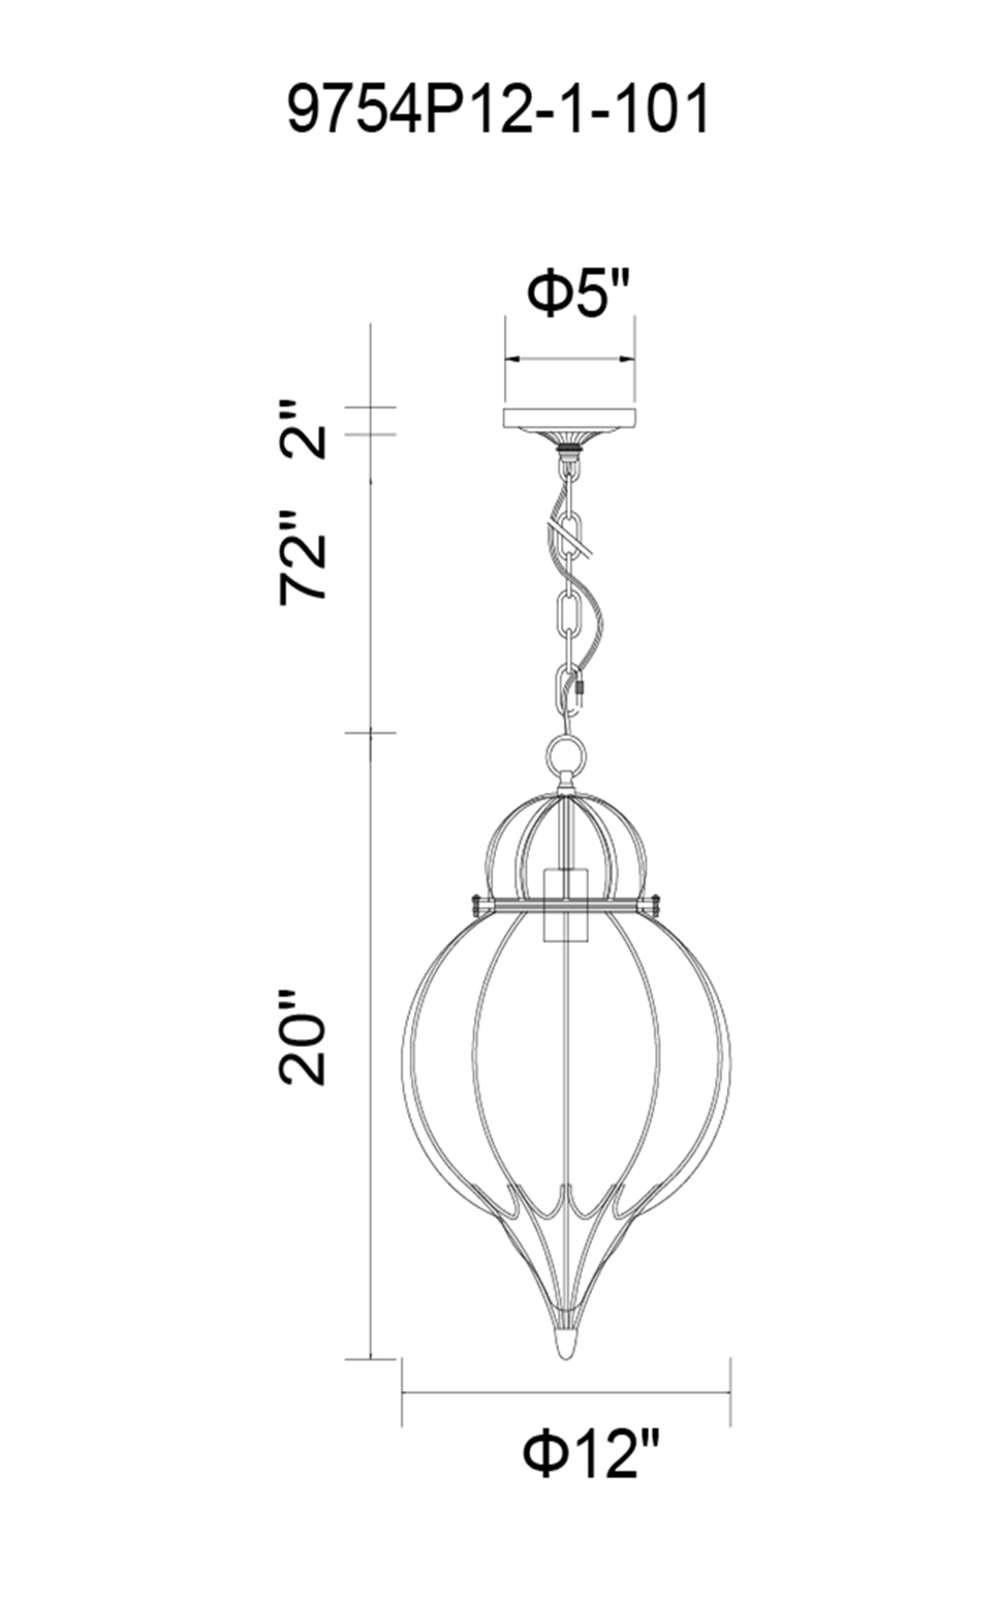 CWI Lighting Escot 1 Light Down Pendant With Black & Wood Finish Model: 9754P12-1-101 Line Drawing